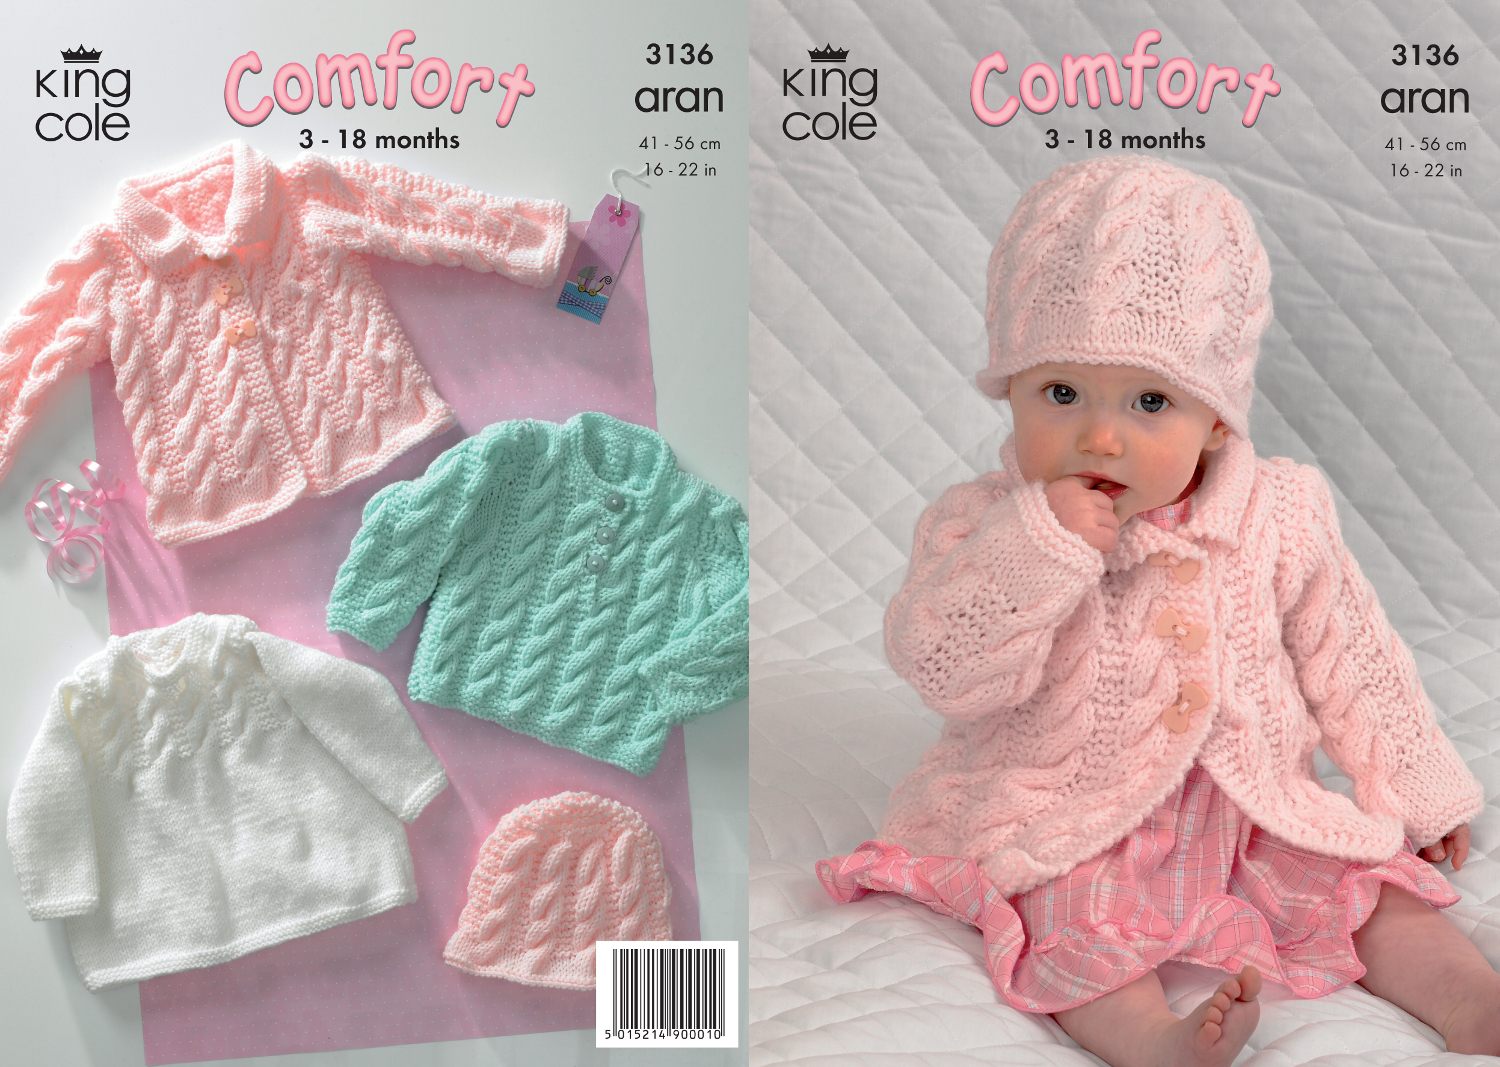 King Cole Knitting Pattern Comfort Aran Babies Coat Dress Sweater ...